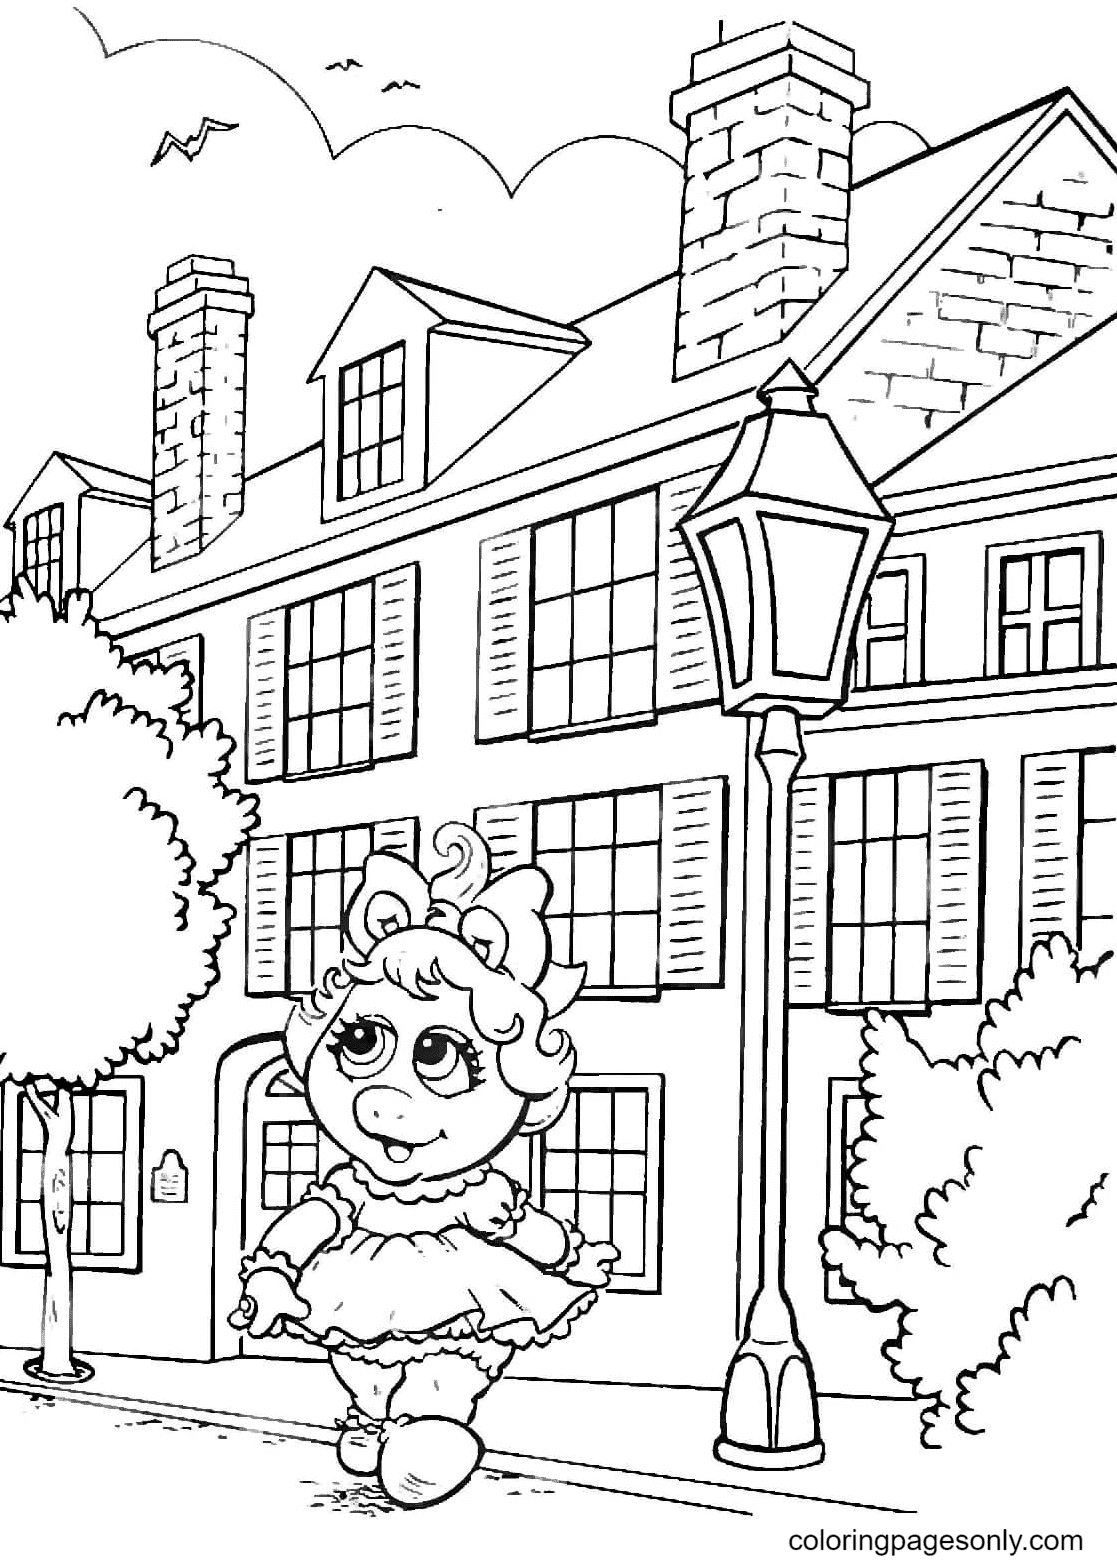 Miss Piggy is Walking in The City Coloring Page